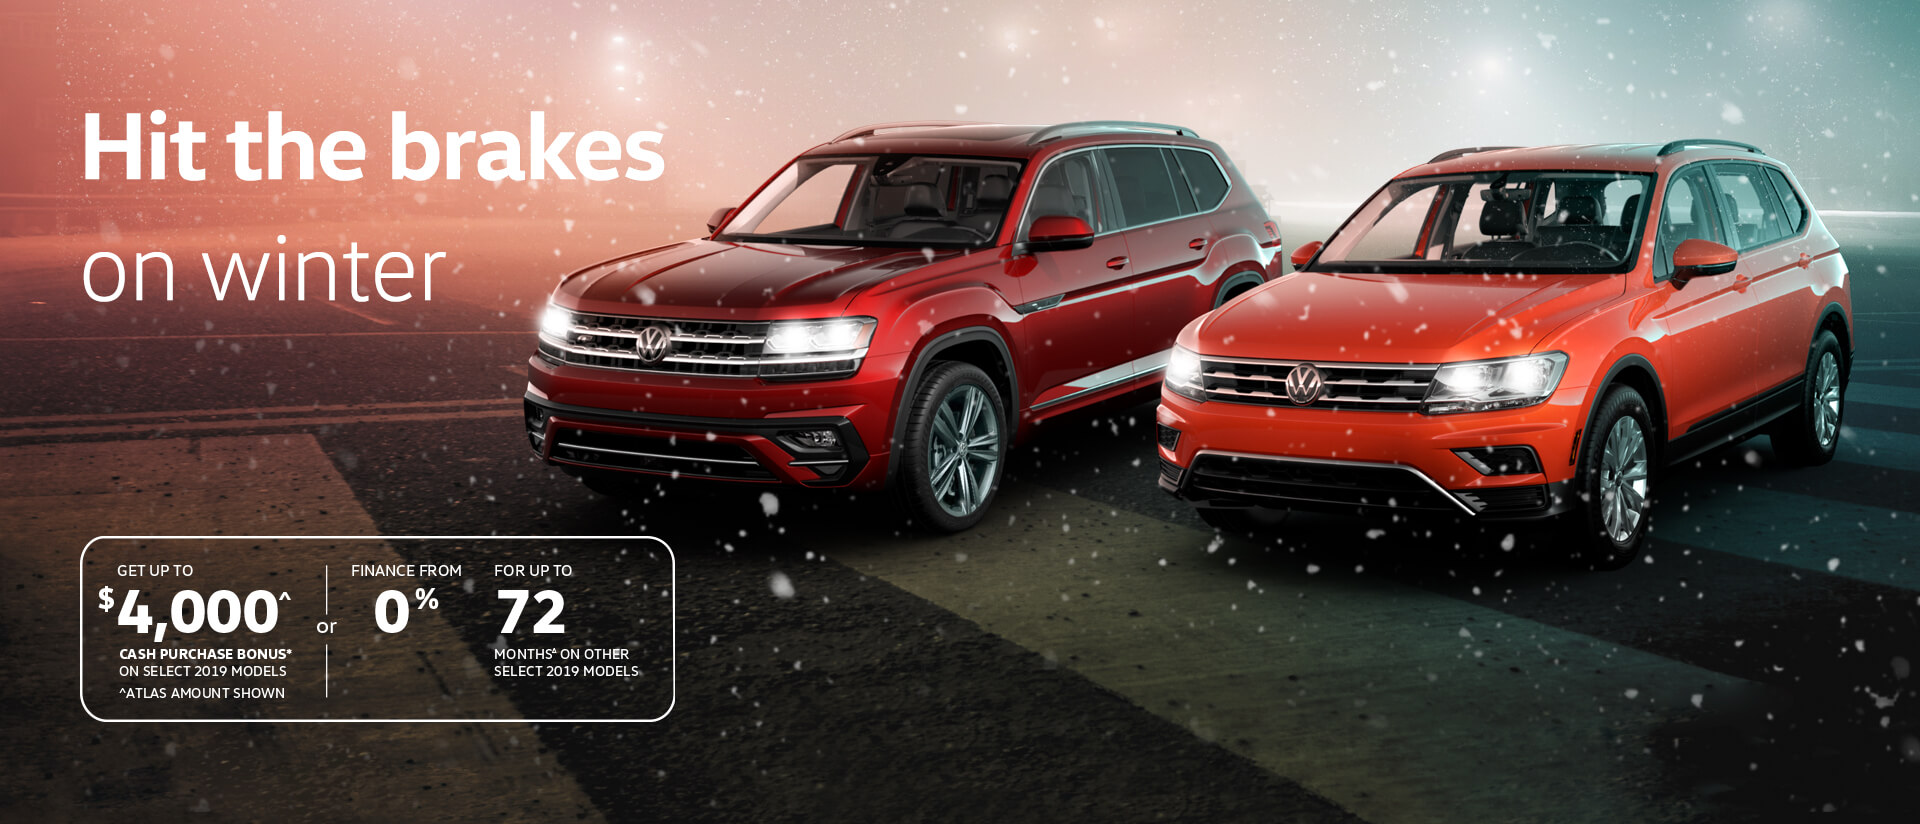 Volkswagen winter offer